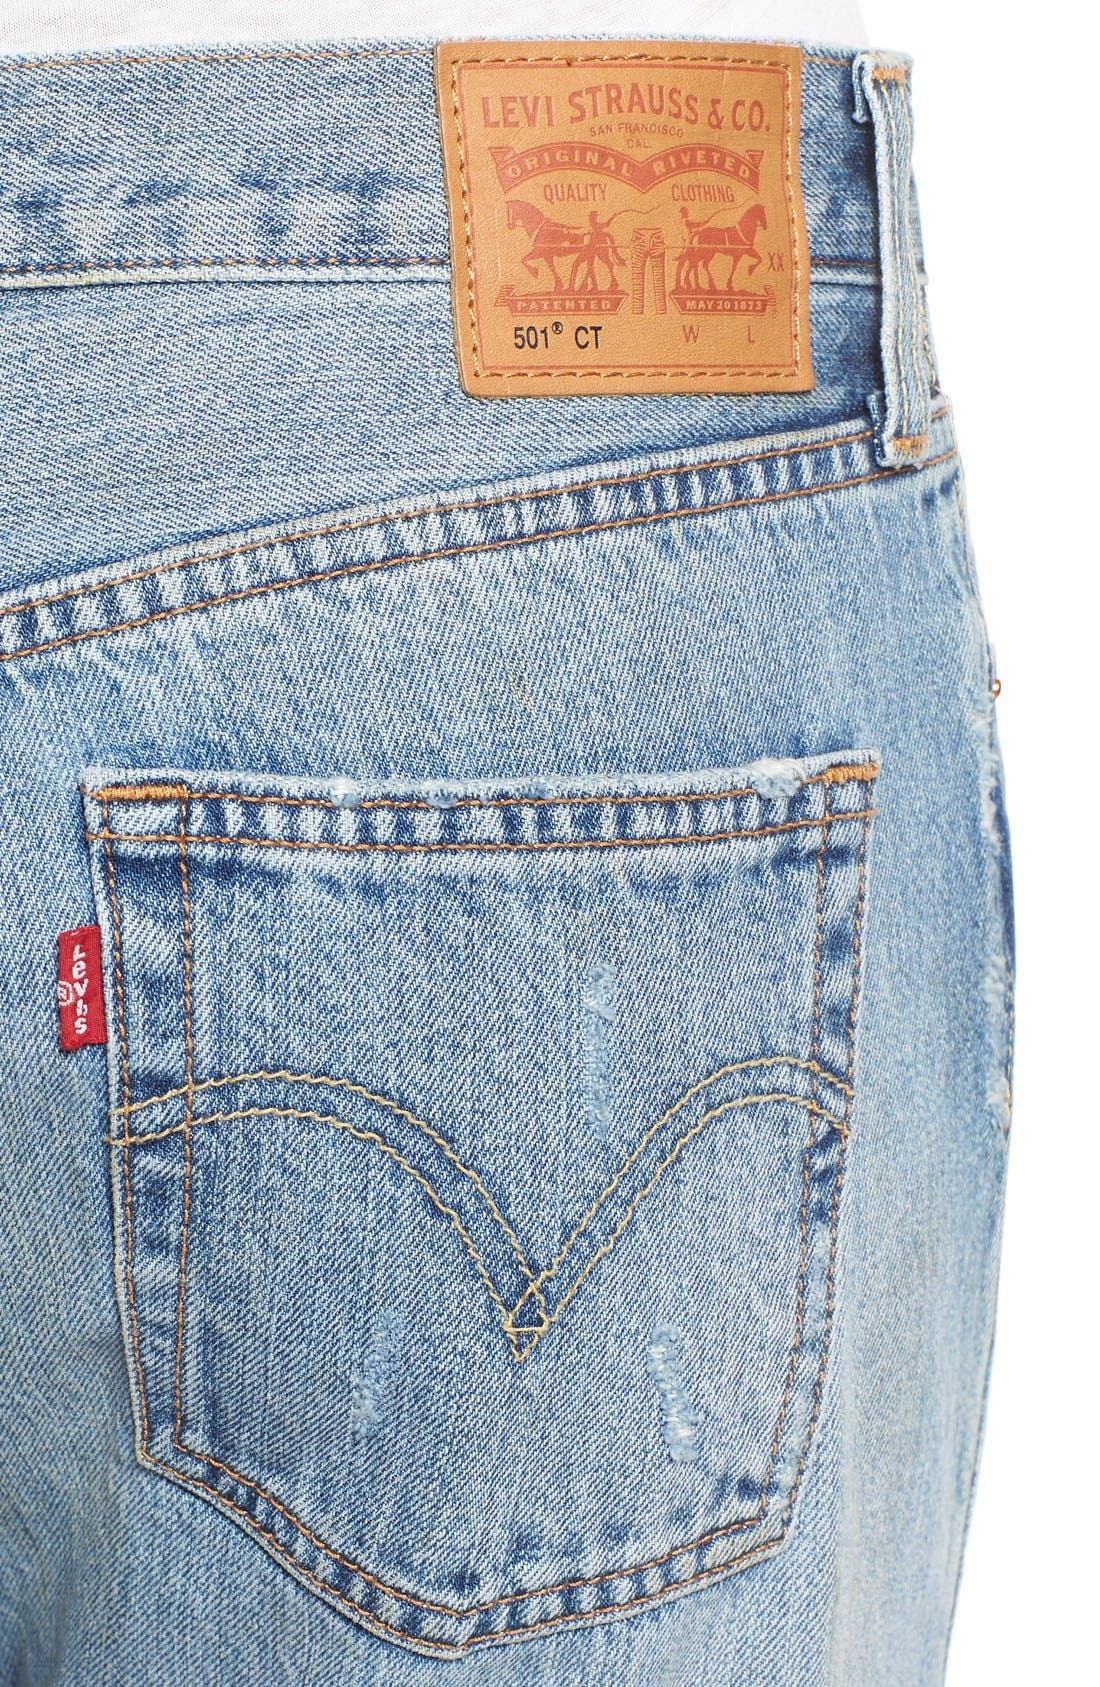 Alternate Image 4  - Levi's® '501 CT' Crop Distressed Boyfriend Jeans (Time Gone By)